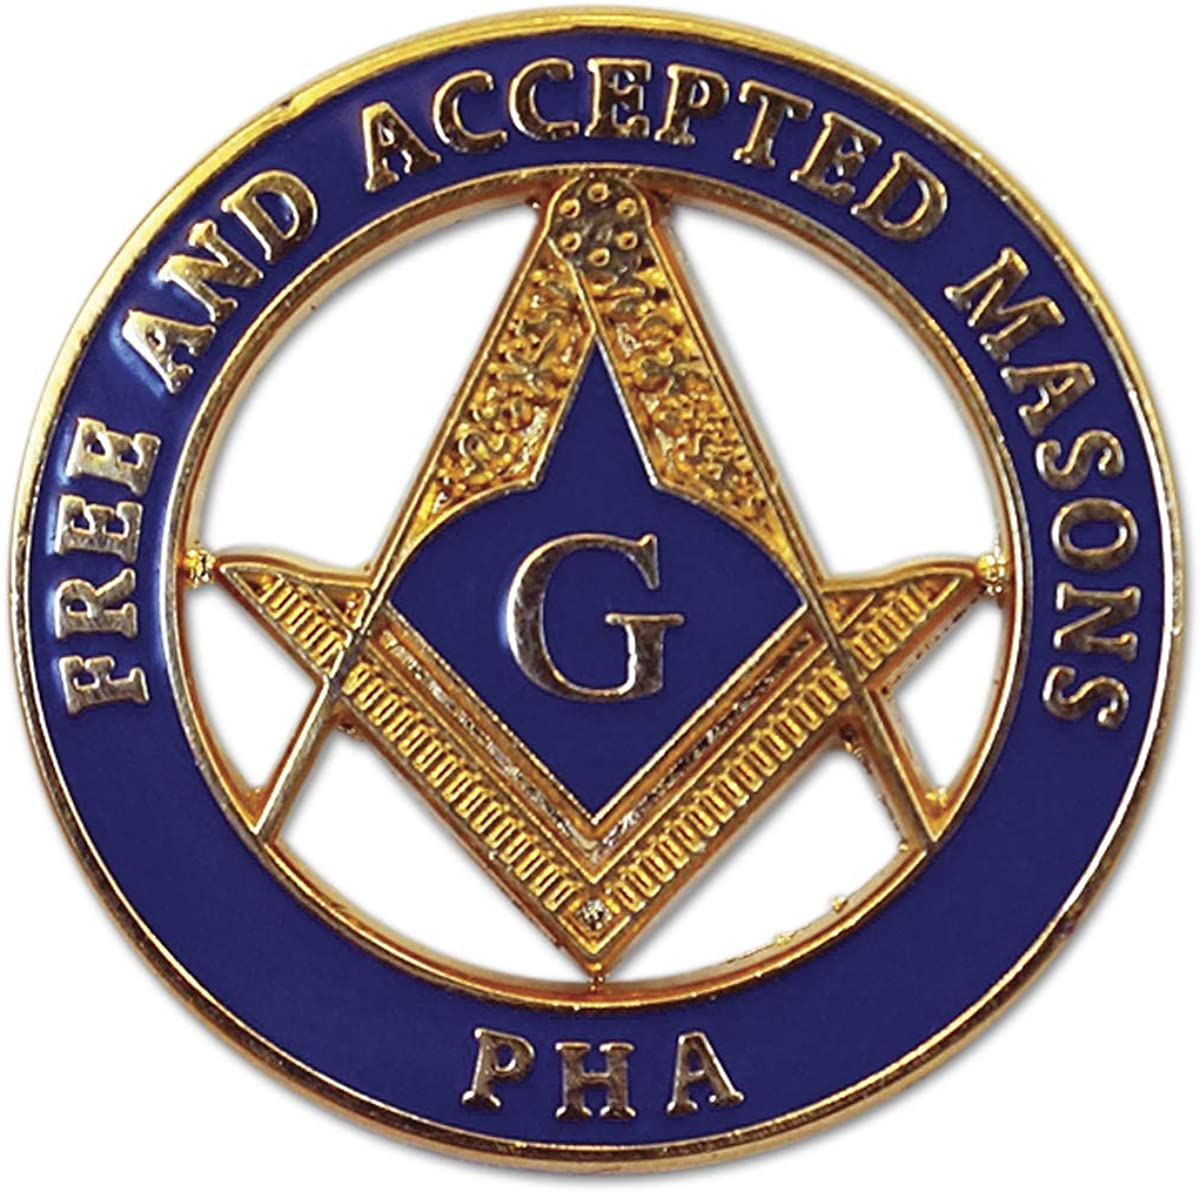 Prince Hall Free & Accepted Masons Round Masonic Lapel Pin - [Blue & Gold][1'' Diameter]